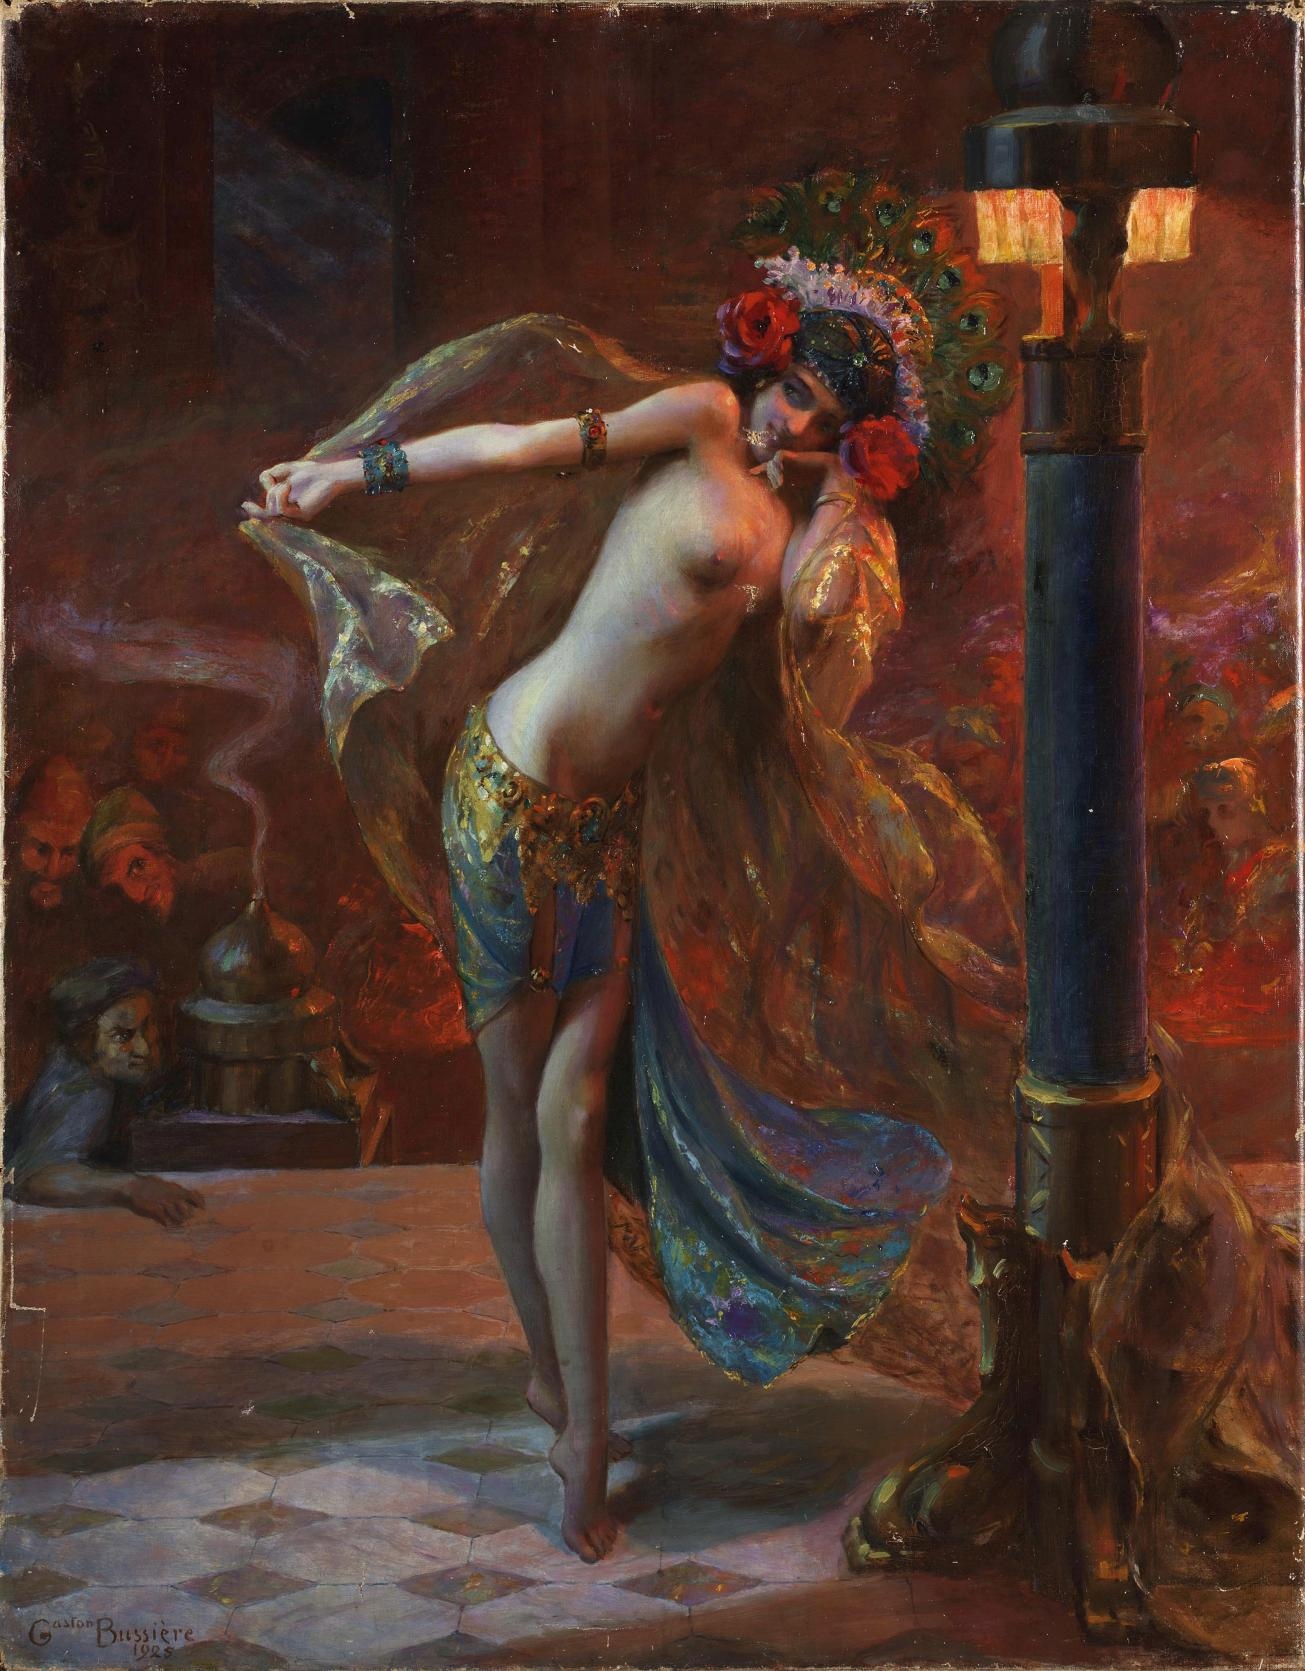 Gaston_Bussière_-_Dance_of_the_Seven_Veils_(1925)